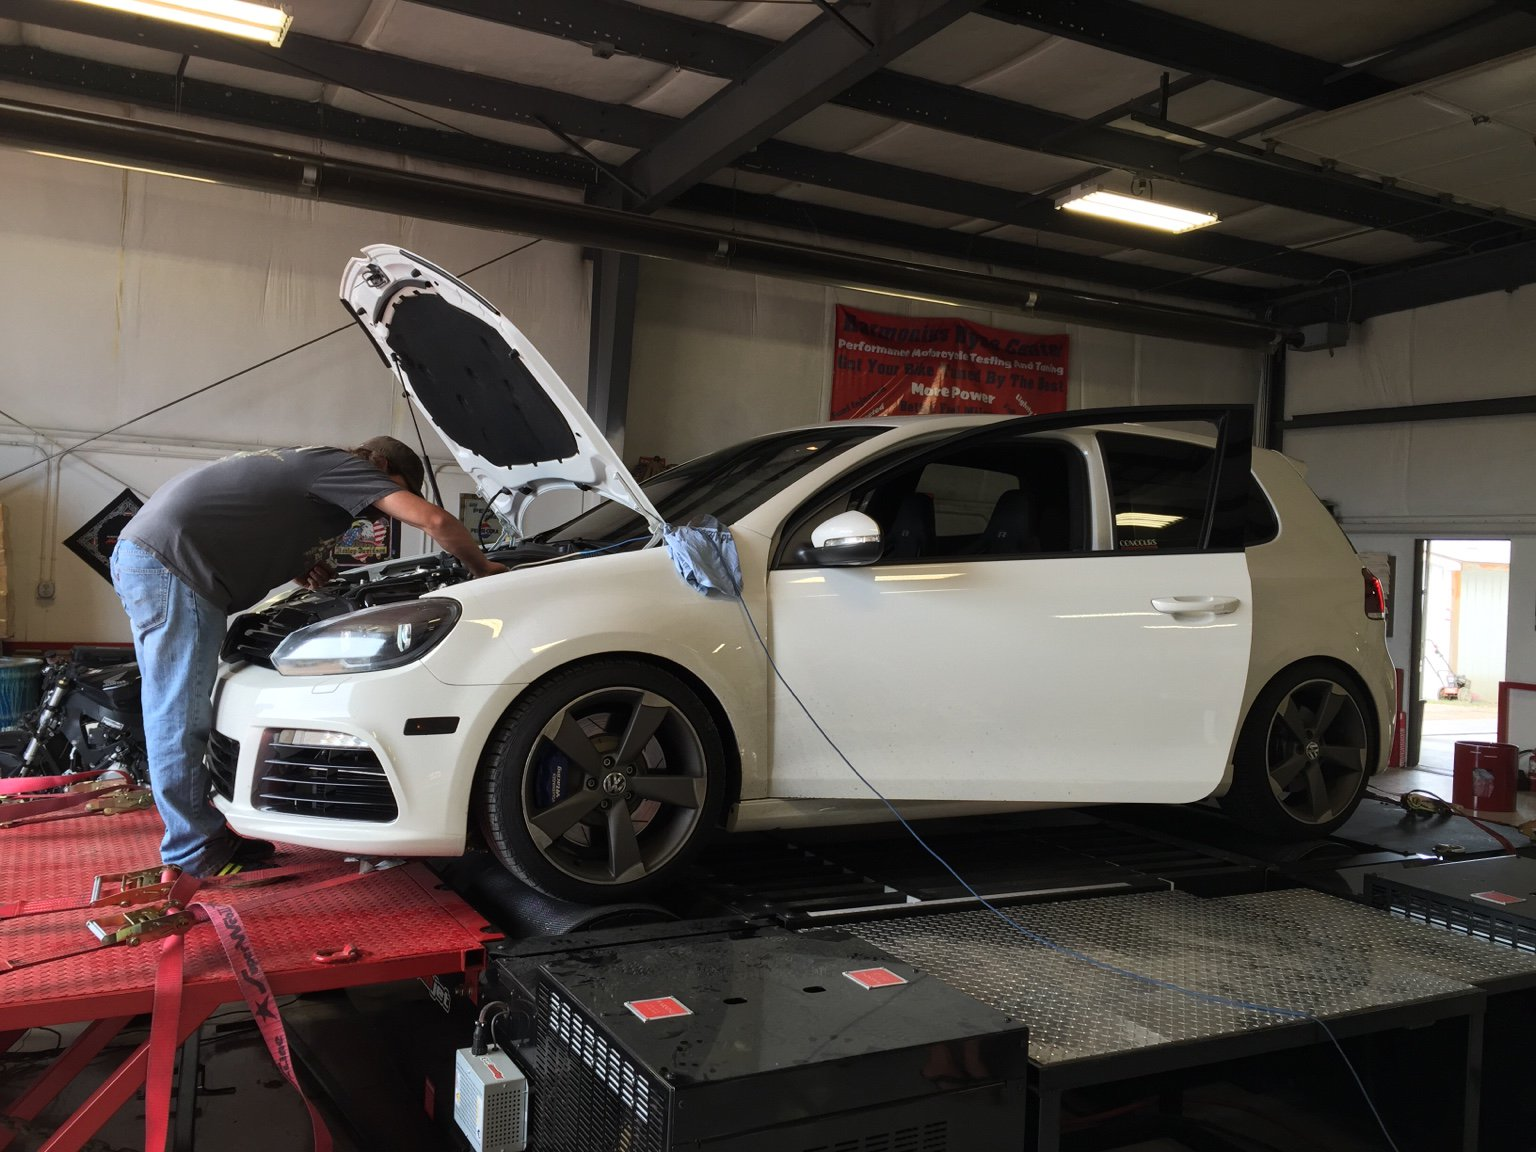 forum friday: flieger's golf r build has come a long way | automoto tale